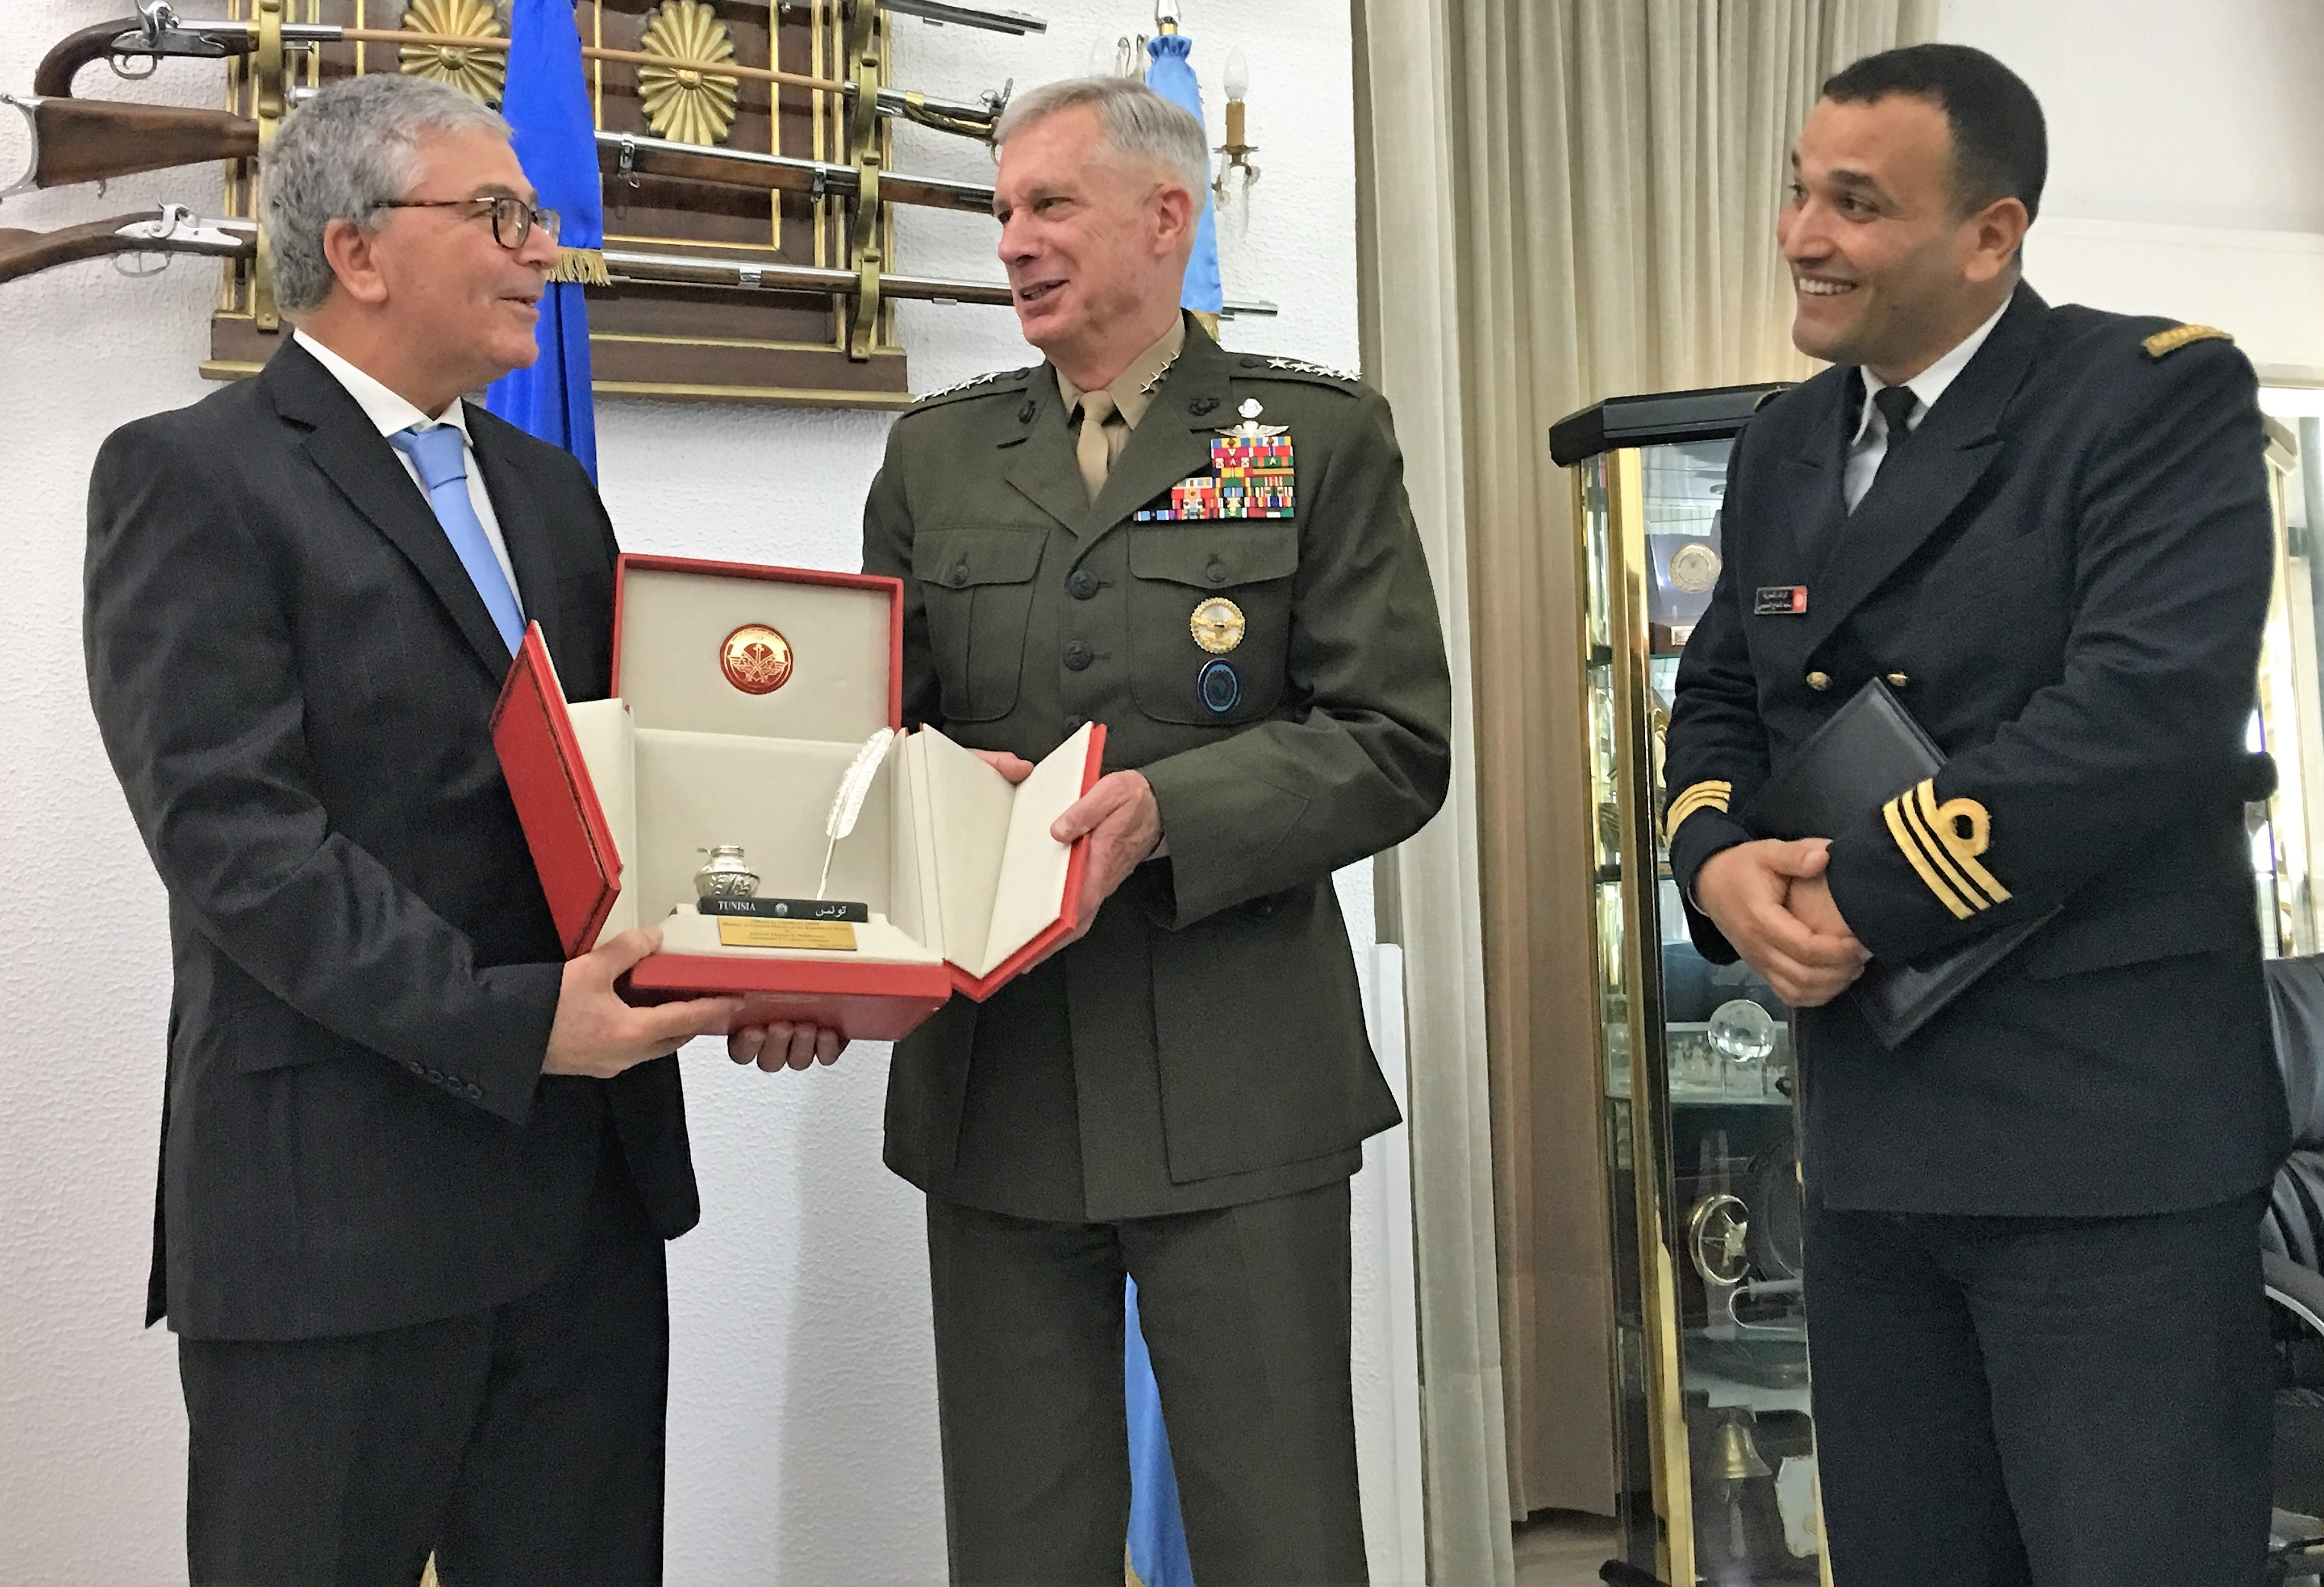 Marine Corps Gen. Thomas D. Waldhauser, commander, U.S. Africa Command, receives a gift of appreciation from Tunisian Minister of Defense Abdelkrim Zbidi May 16, 2019. Waldhauser met with Tunisian military officials to discuss security concerns in the region and opportunities to strengthen partnerships.